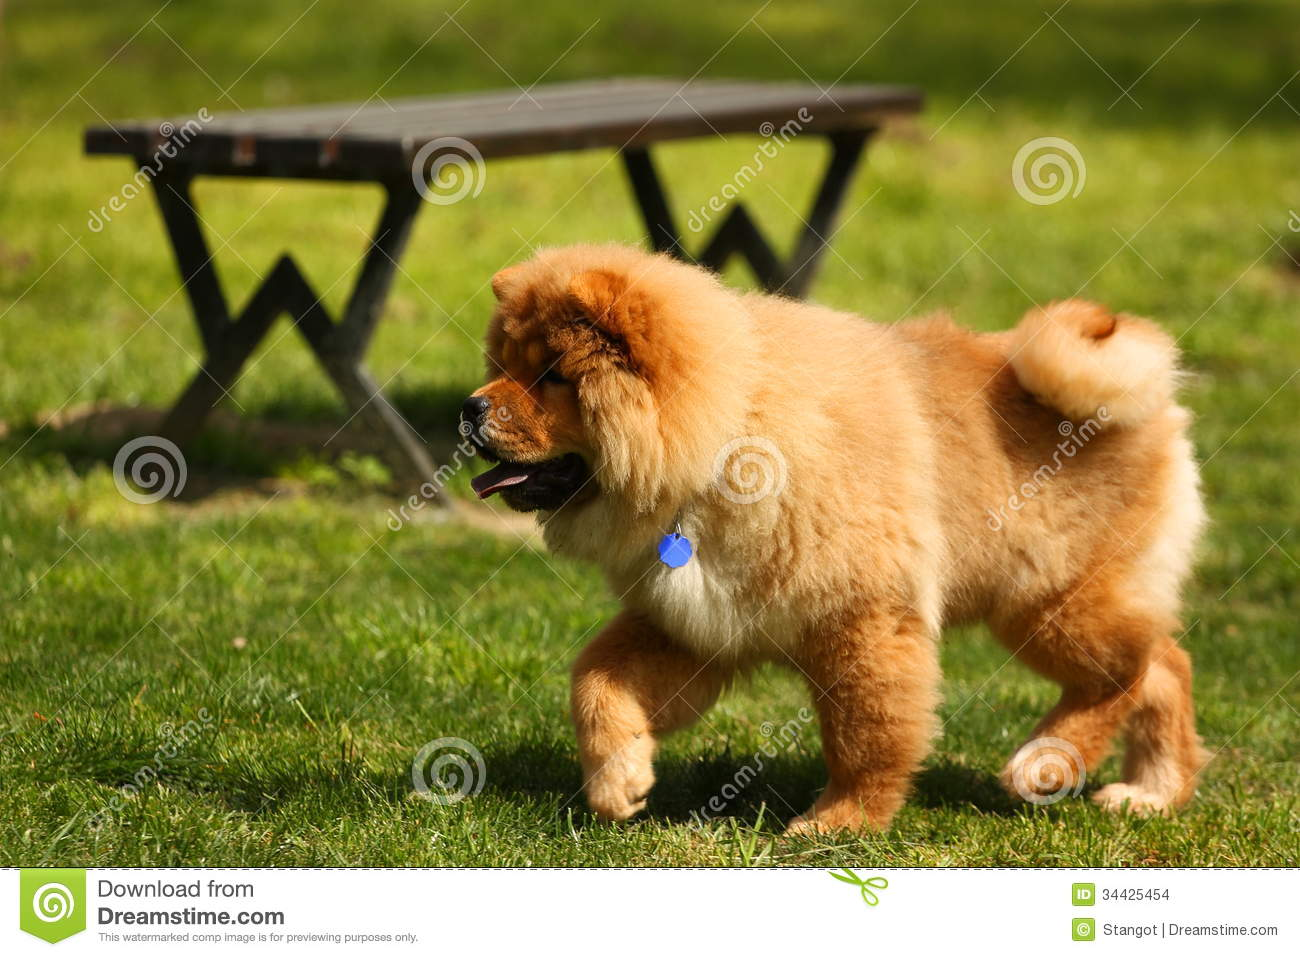 Dog In Park Stock Images - Image: 34425454